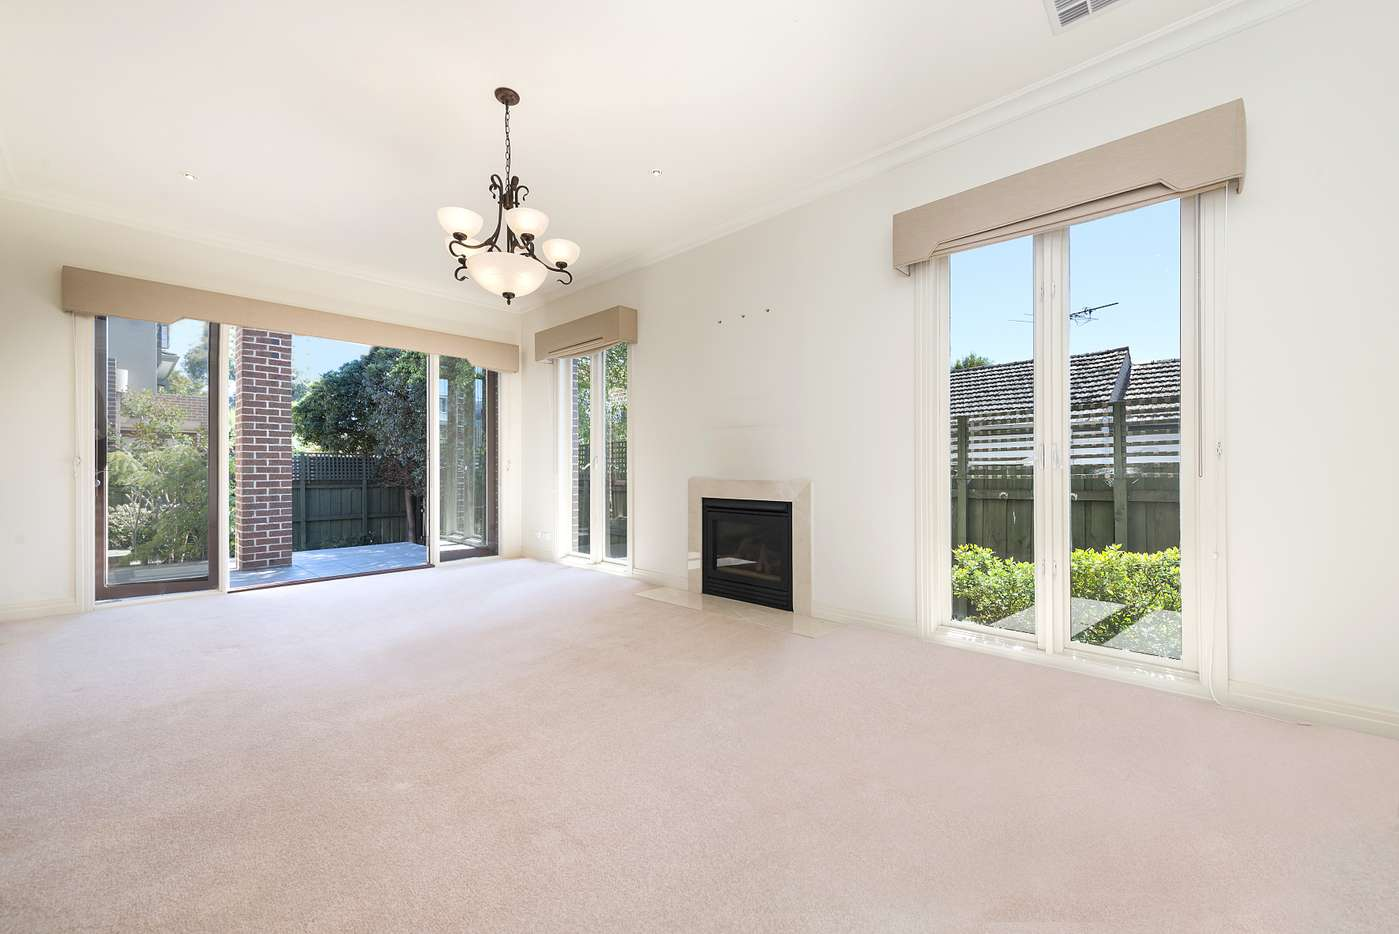 Main view of Homely house listing, 158 Church St, Brighton, VIC 3186